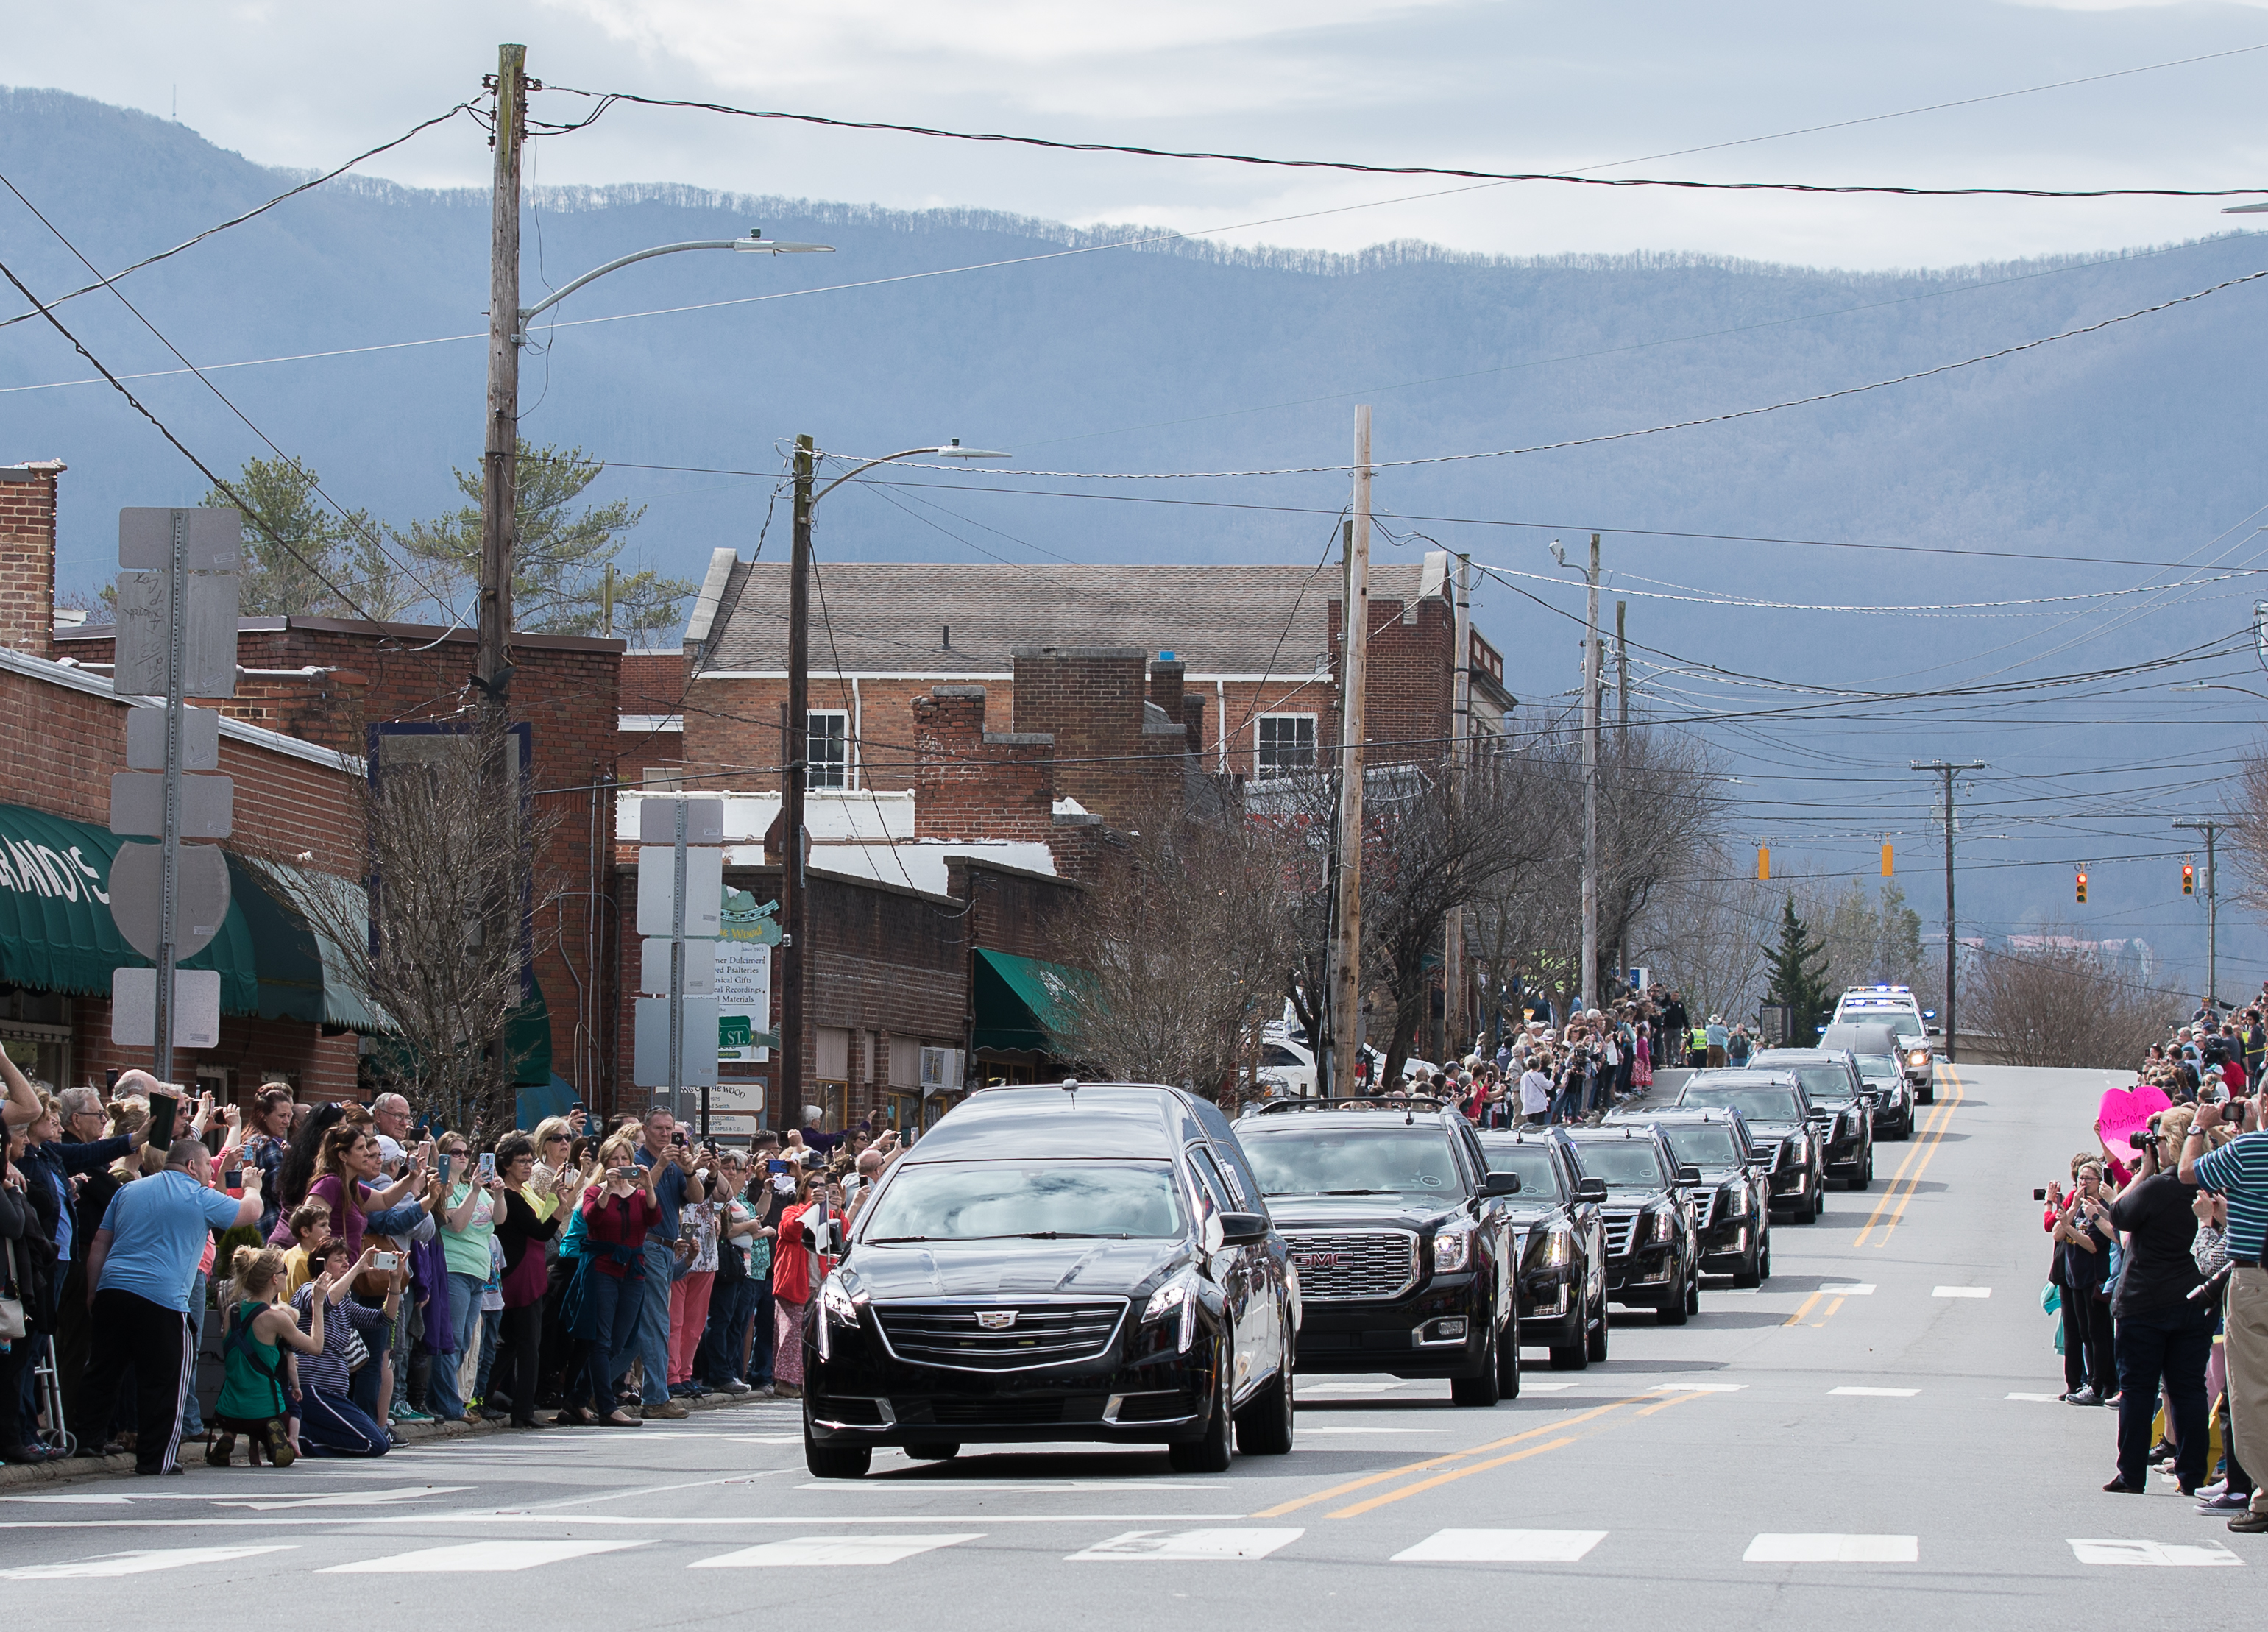 The scene in Black Mountain on Saturday, Feb. 24, as Billy Graham's motorcade drove through downtown. People lined the road to pay their respects to the late reverend, who died on Feb. 21, 2018. (Photo credit: Lindsay Higgins)